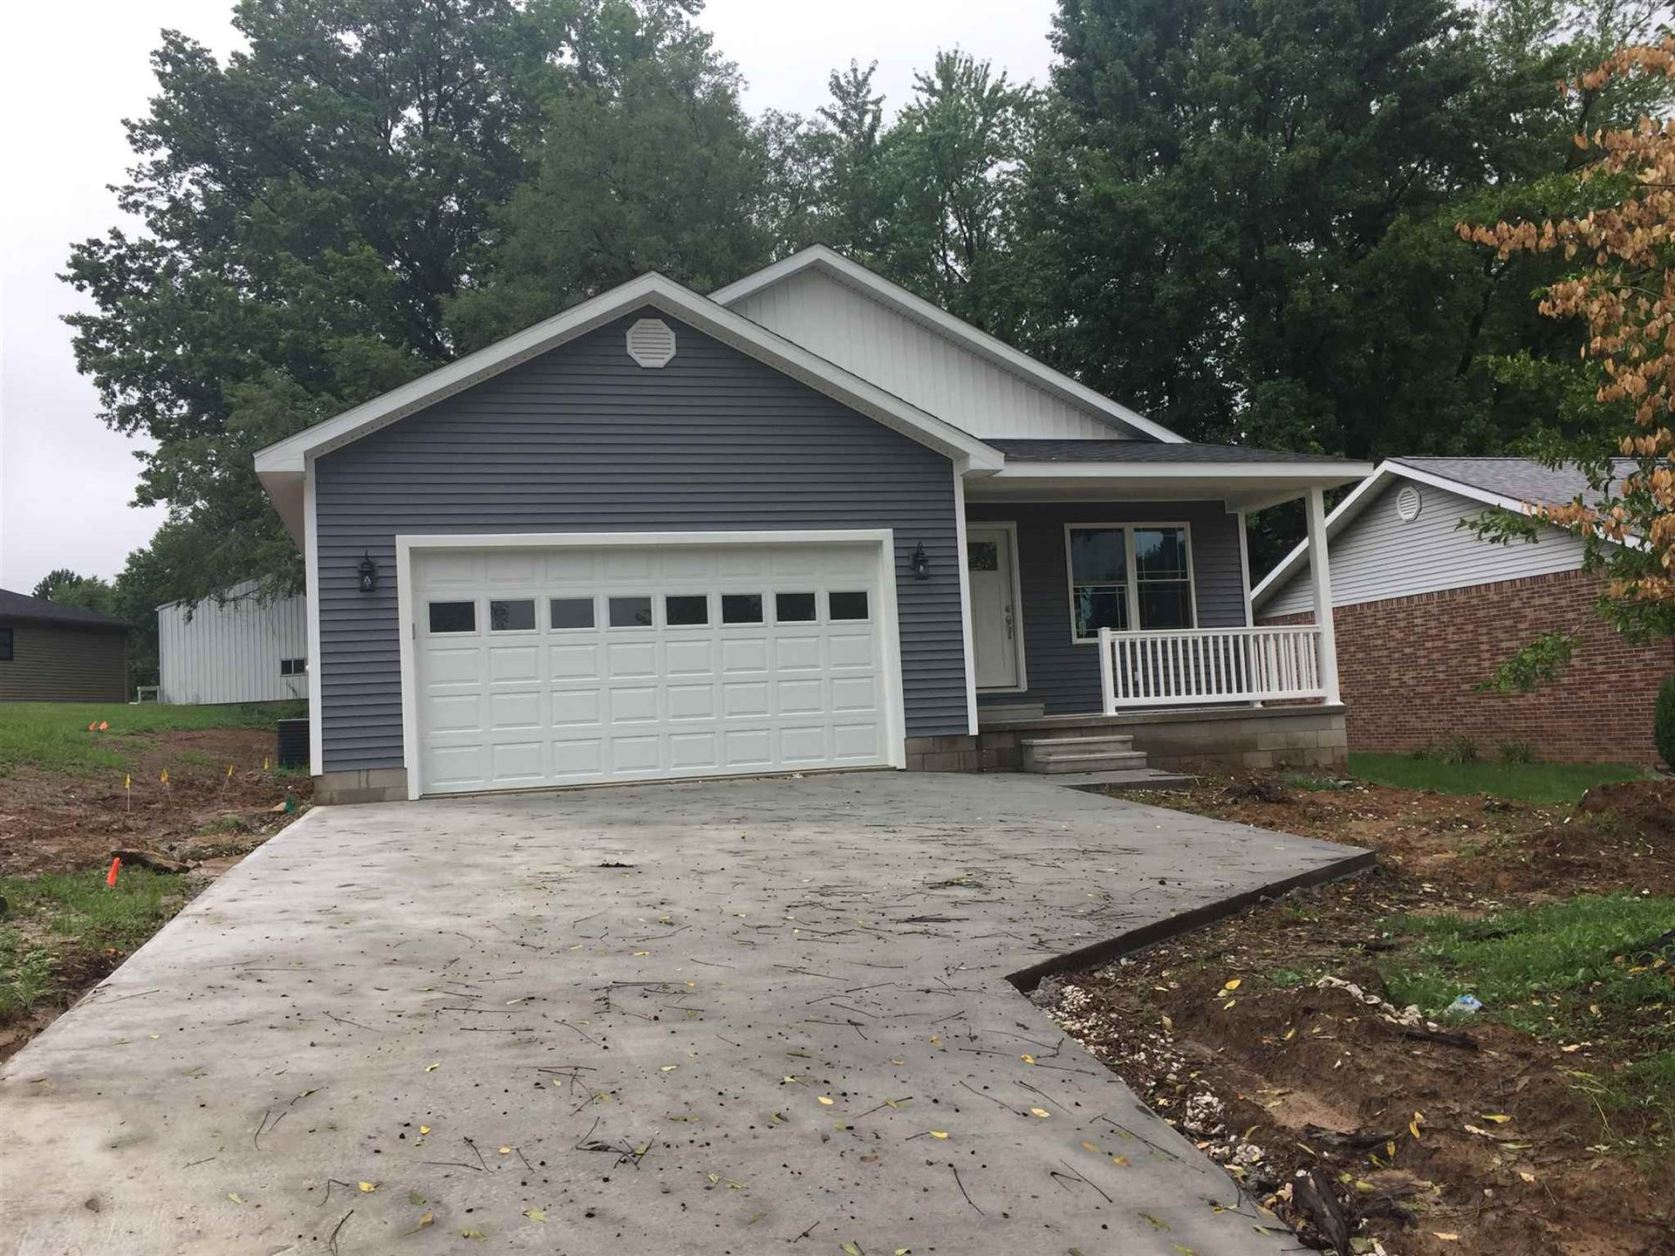 Photo of 1710 Parkdale Drive, Washington, IN 47501 (MLS # 202026122)